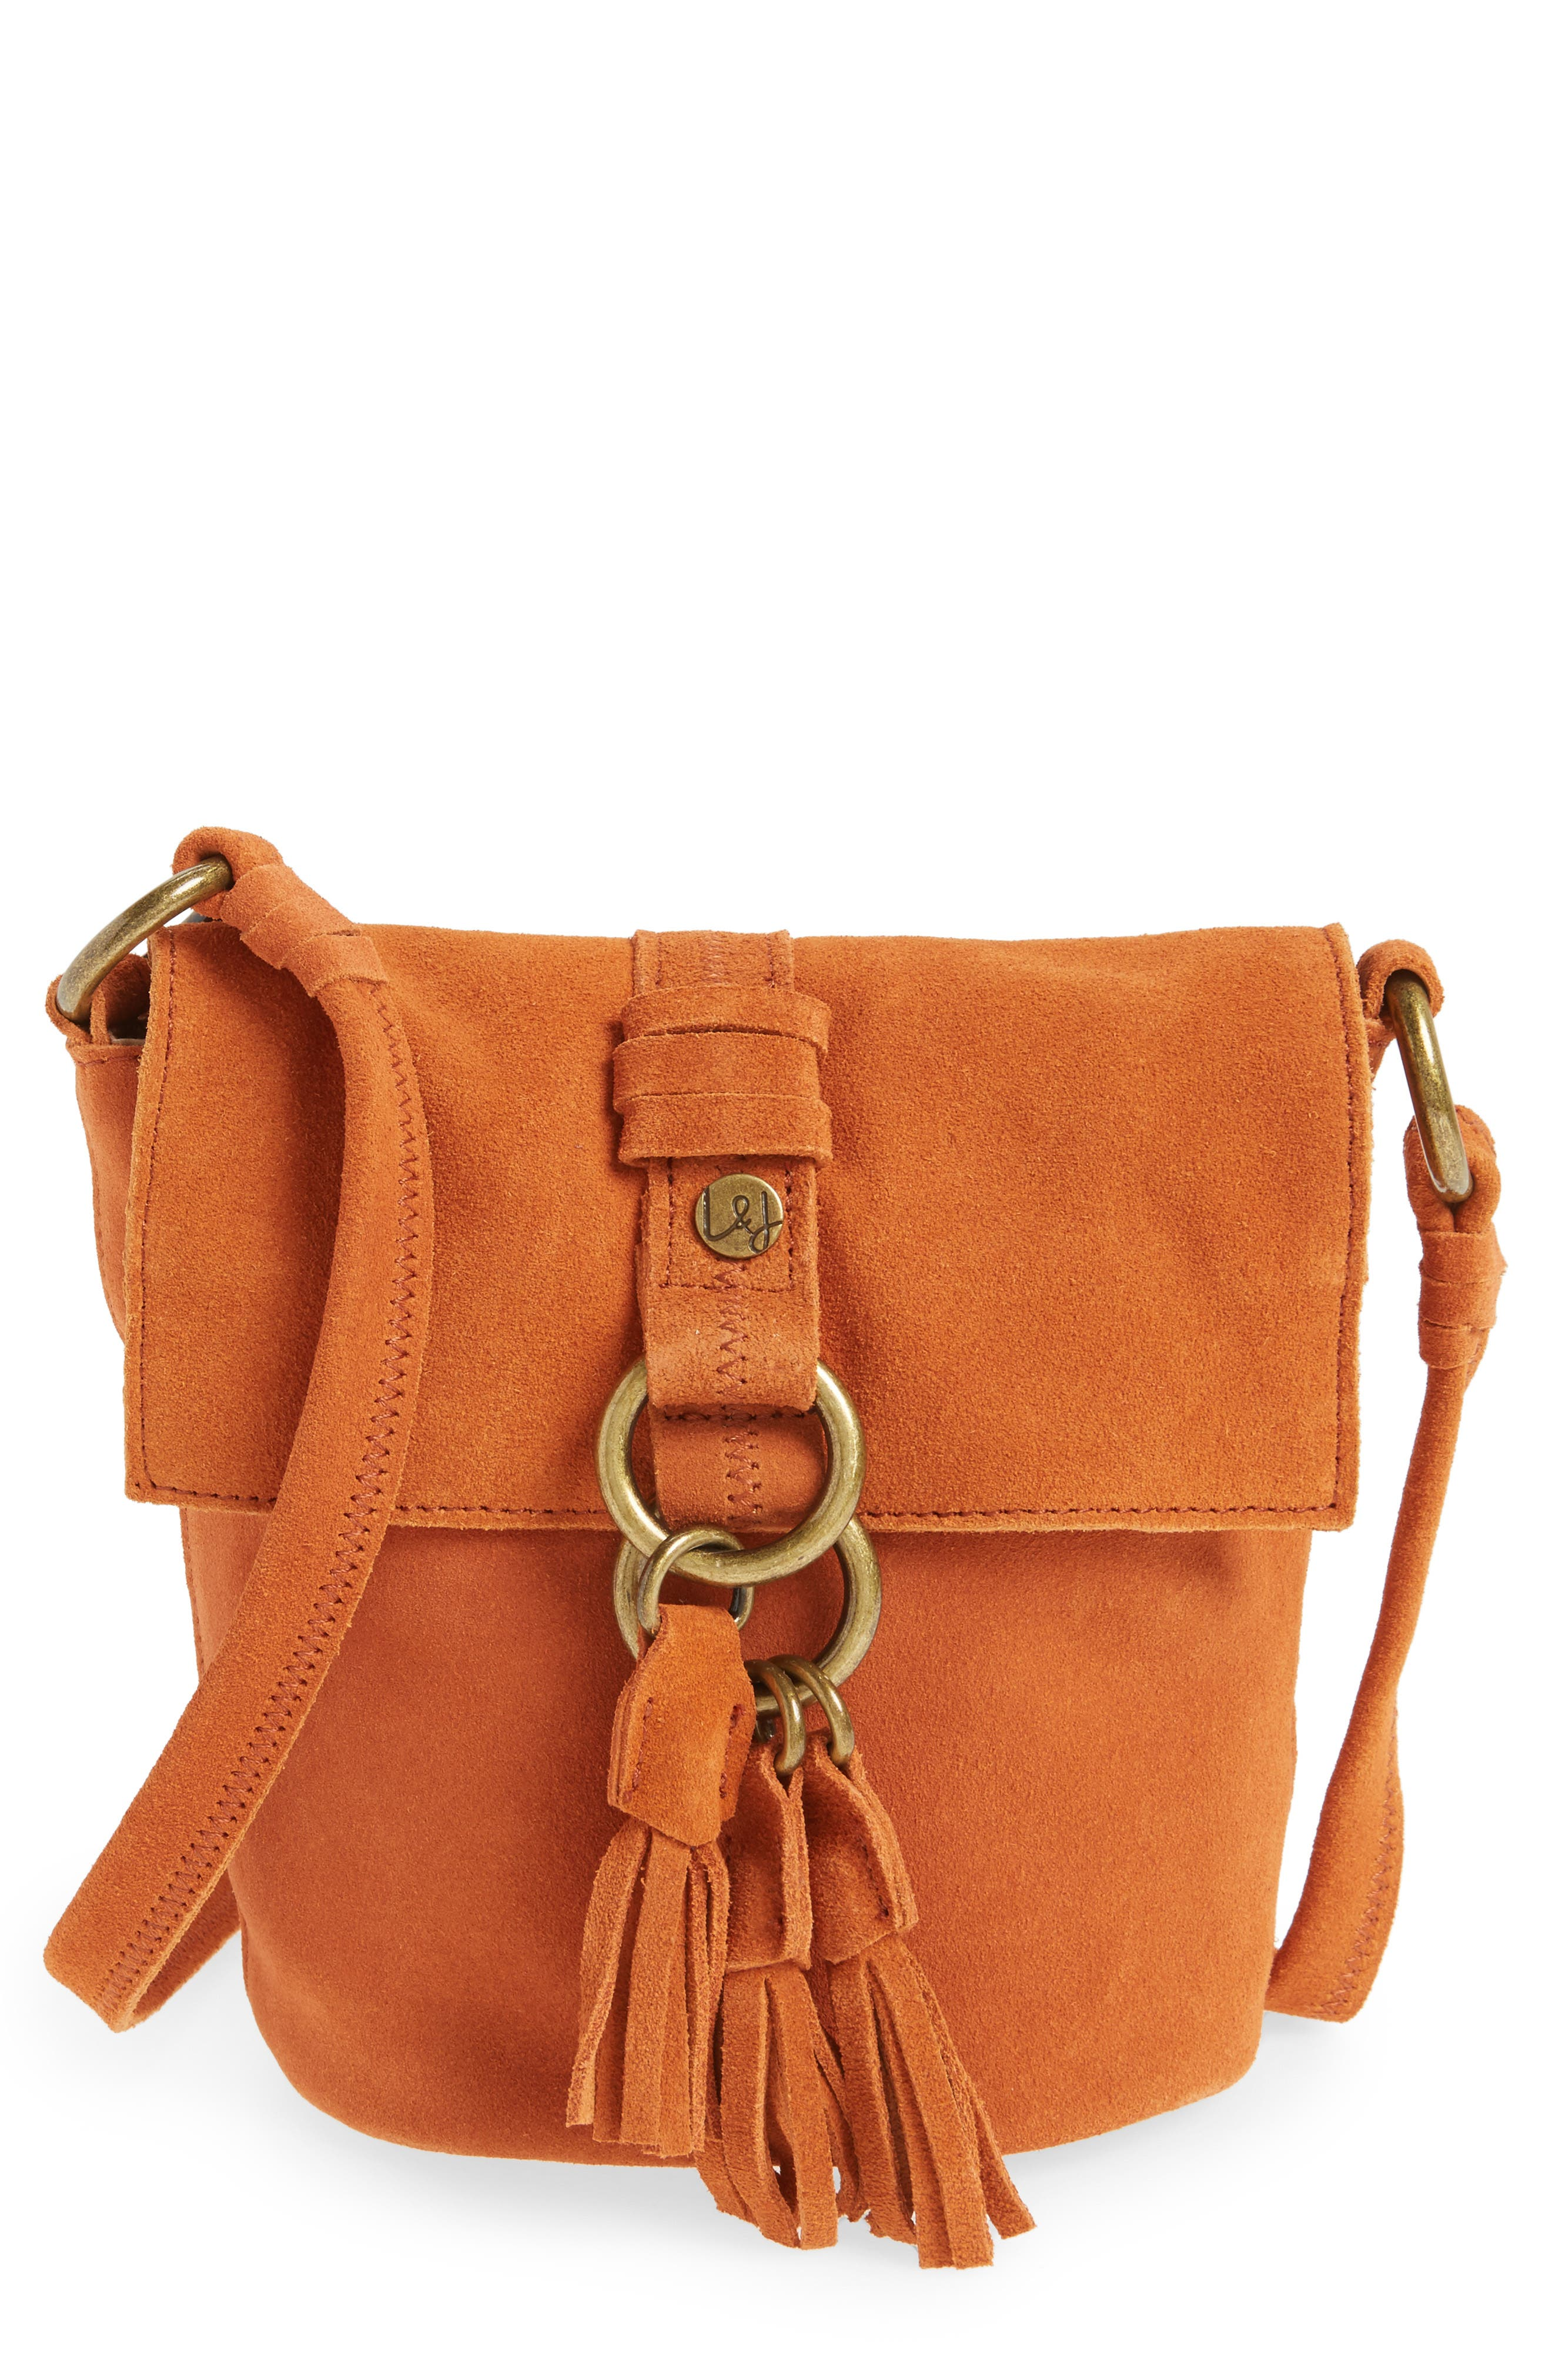 Elle & Jae Gypset Wildleder Suede Crossbody Bag